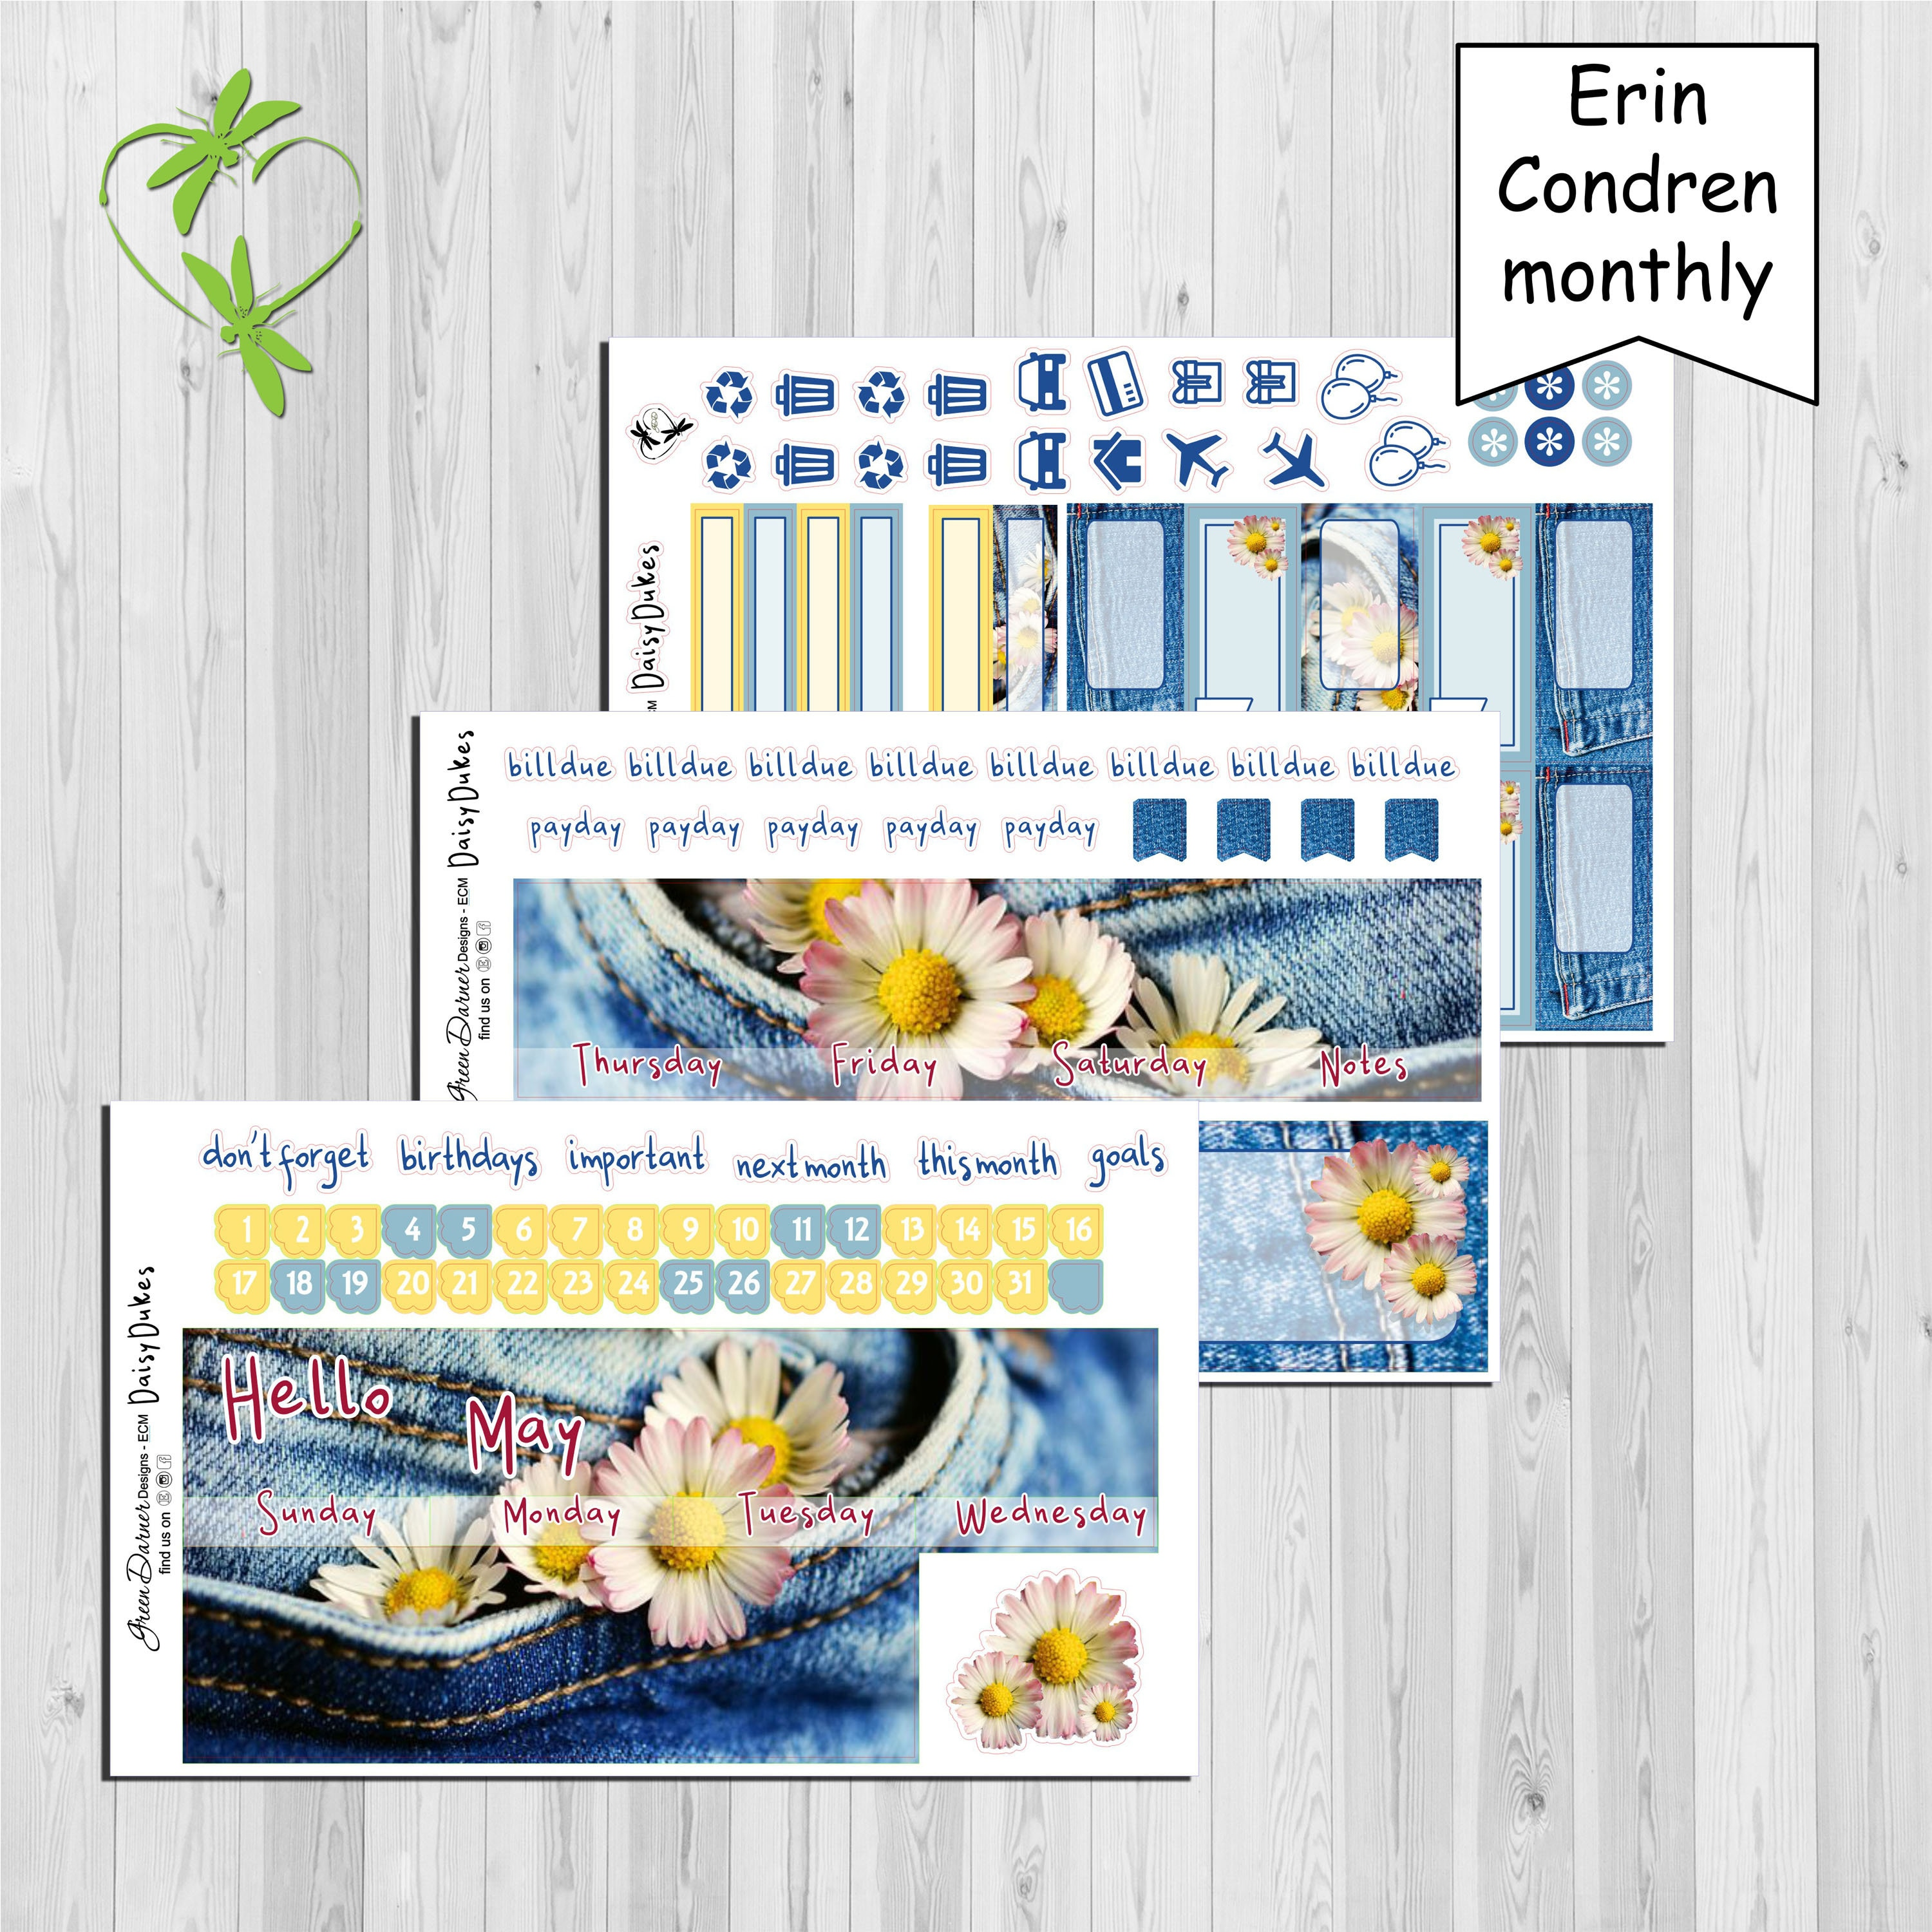 b9fd2f8f8 May 2019 Erin Condren Daisy Dukes monthly view planner | Etsy